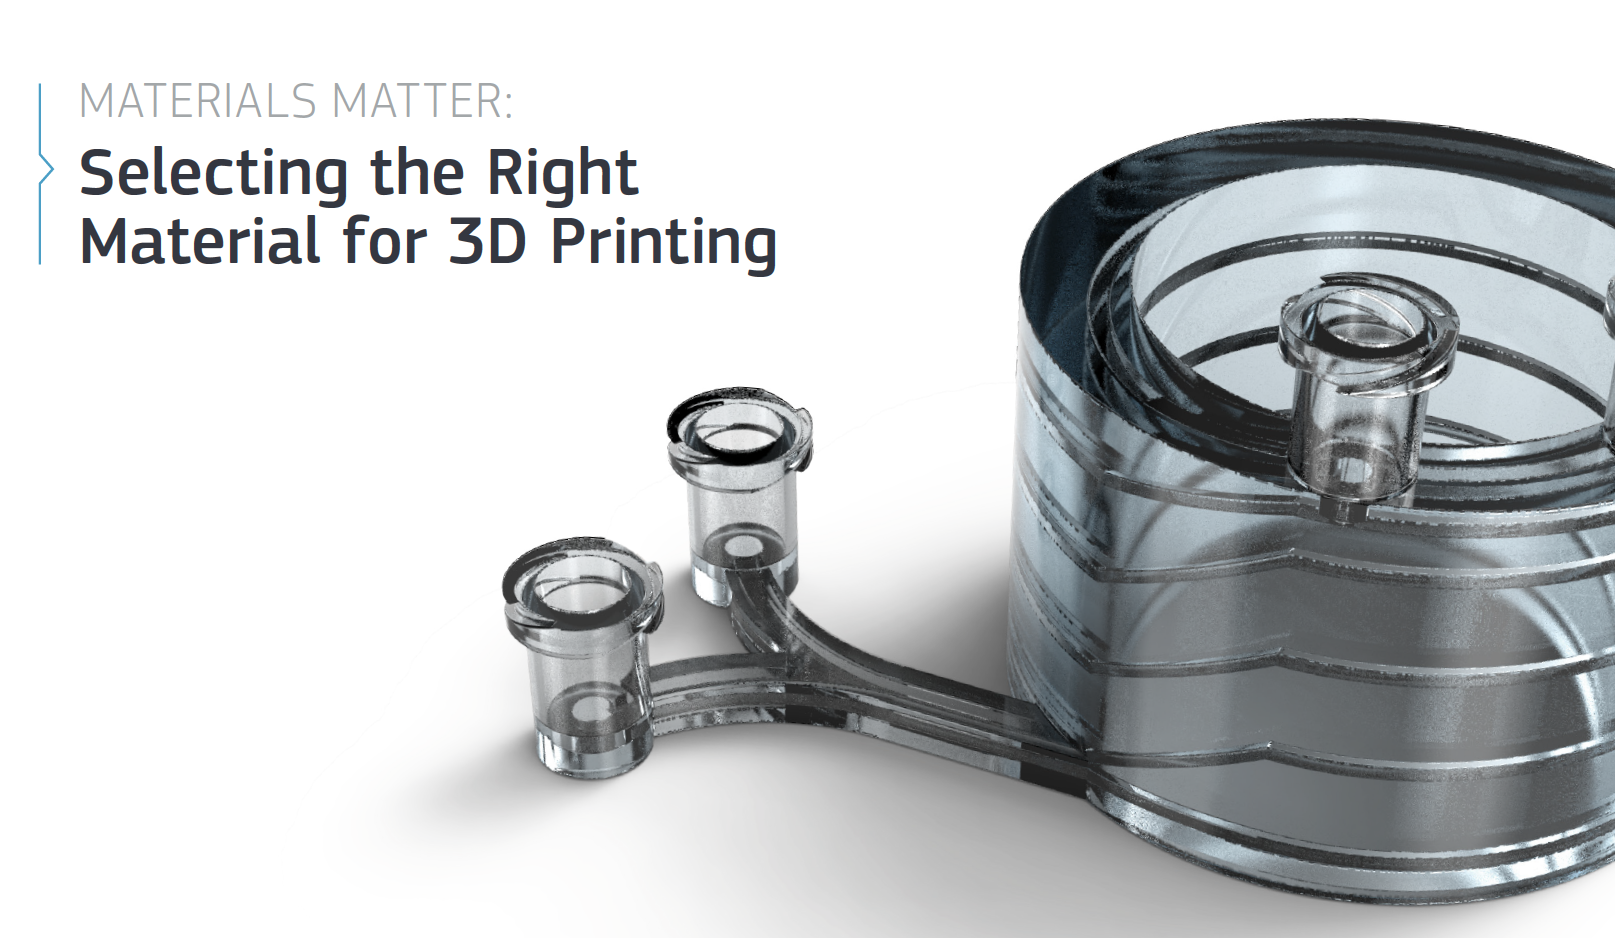 Selecting the right material for 3D printing